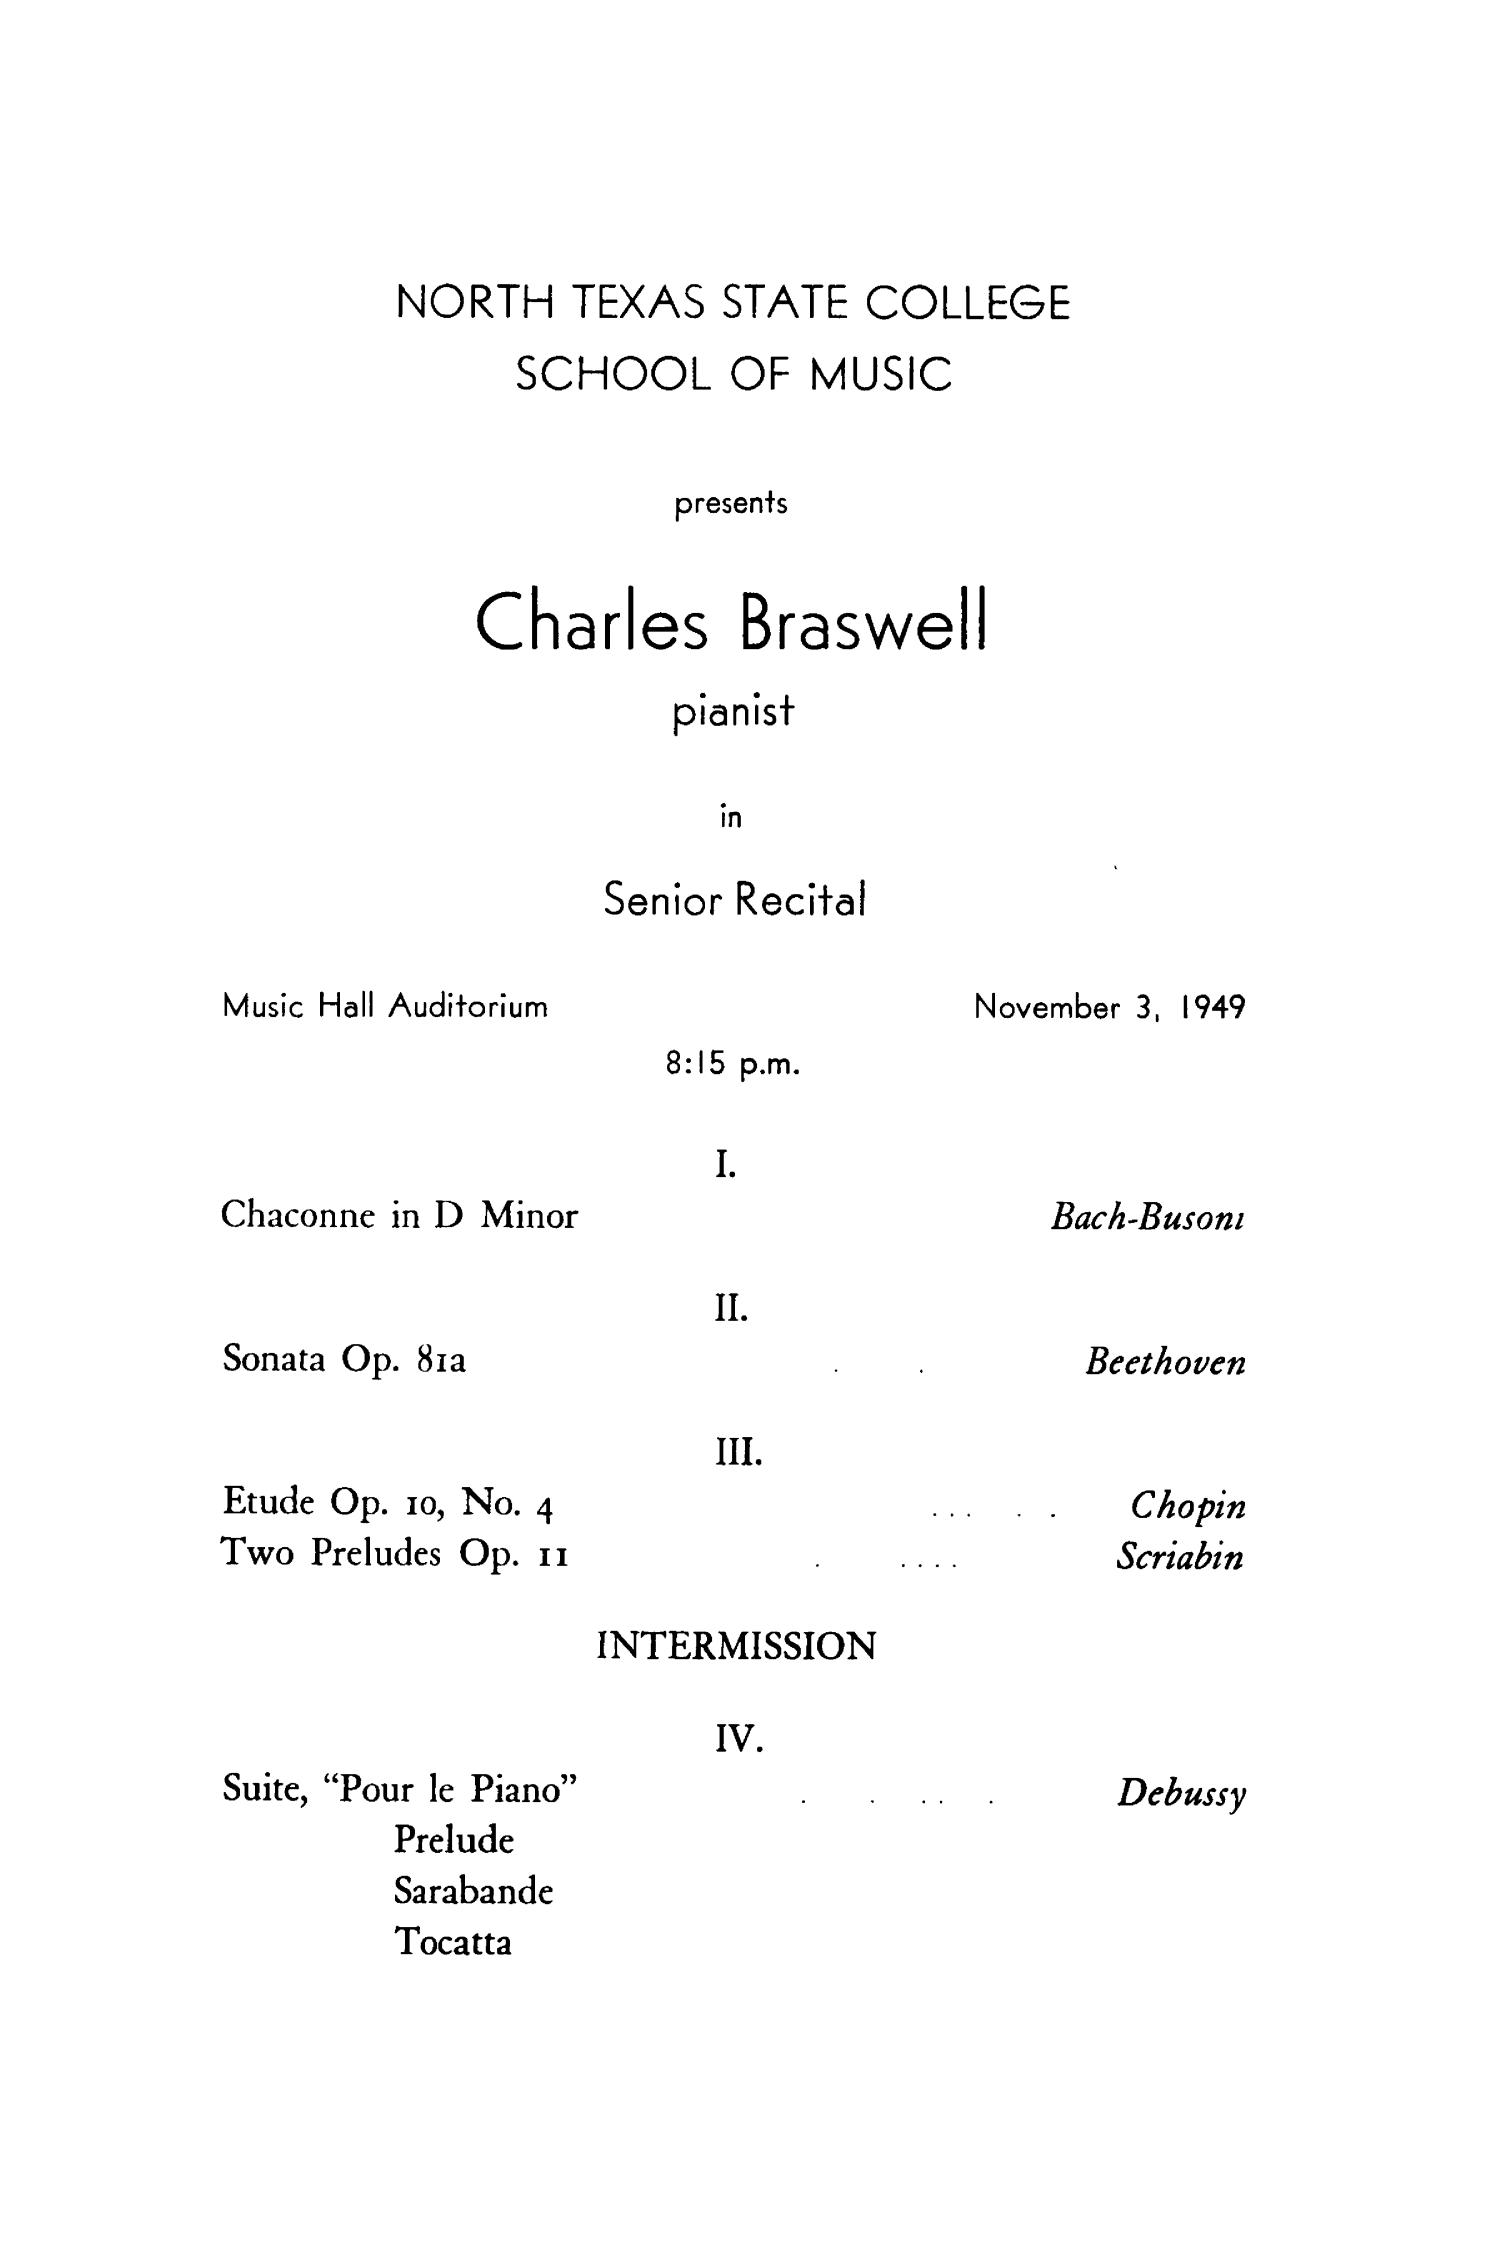 School of Music Program Book 1949-1950                                                                                                      17